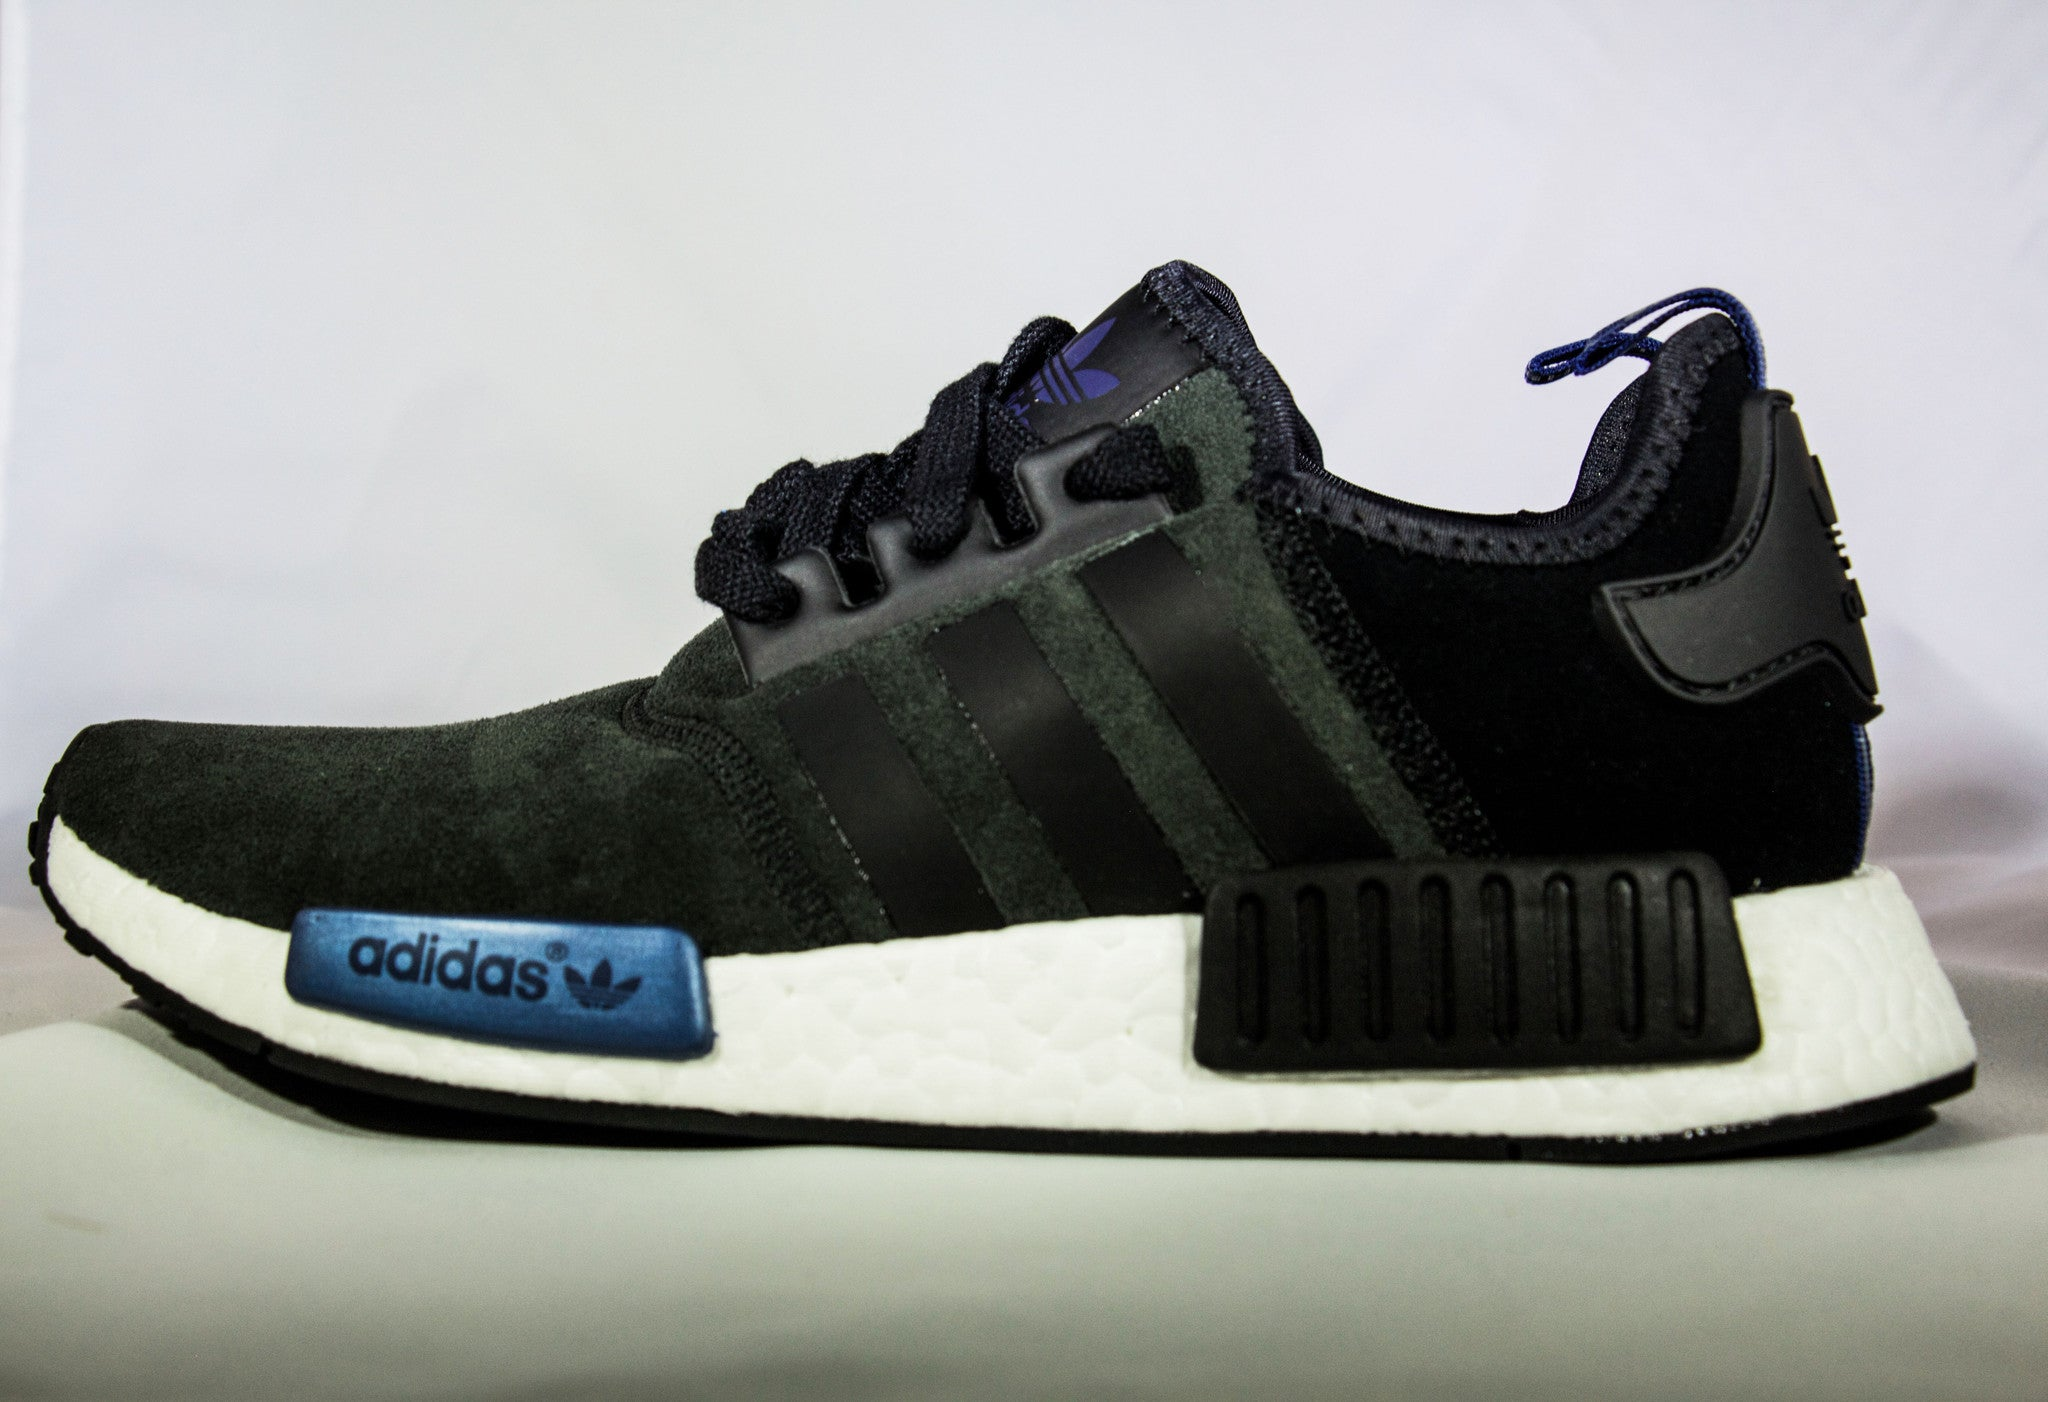 NMD R1 Adidas CQ2413 blackwhiteinfrared | Flight Club